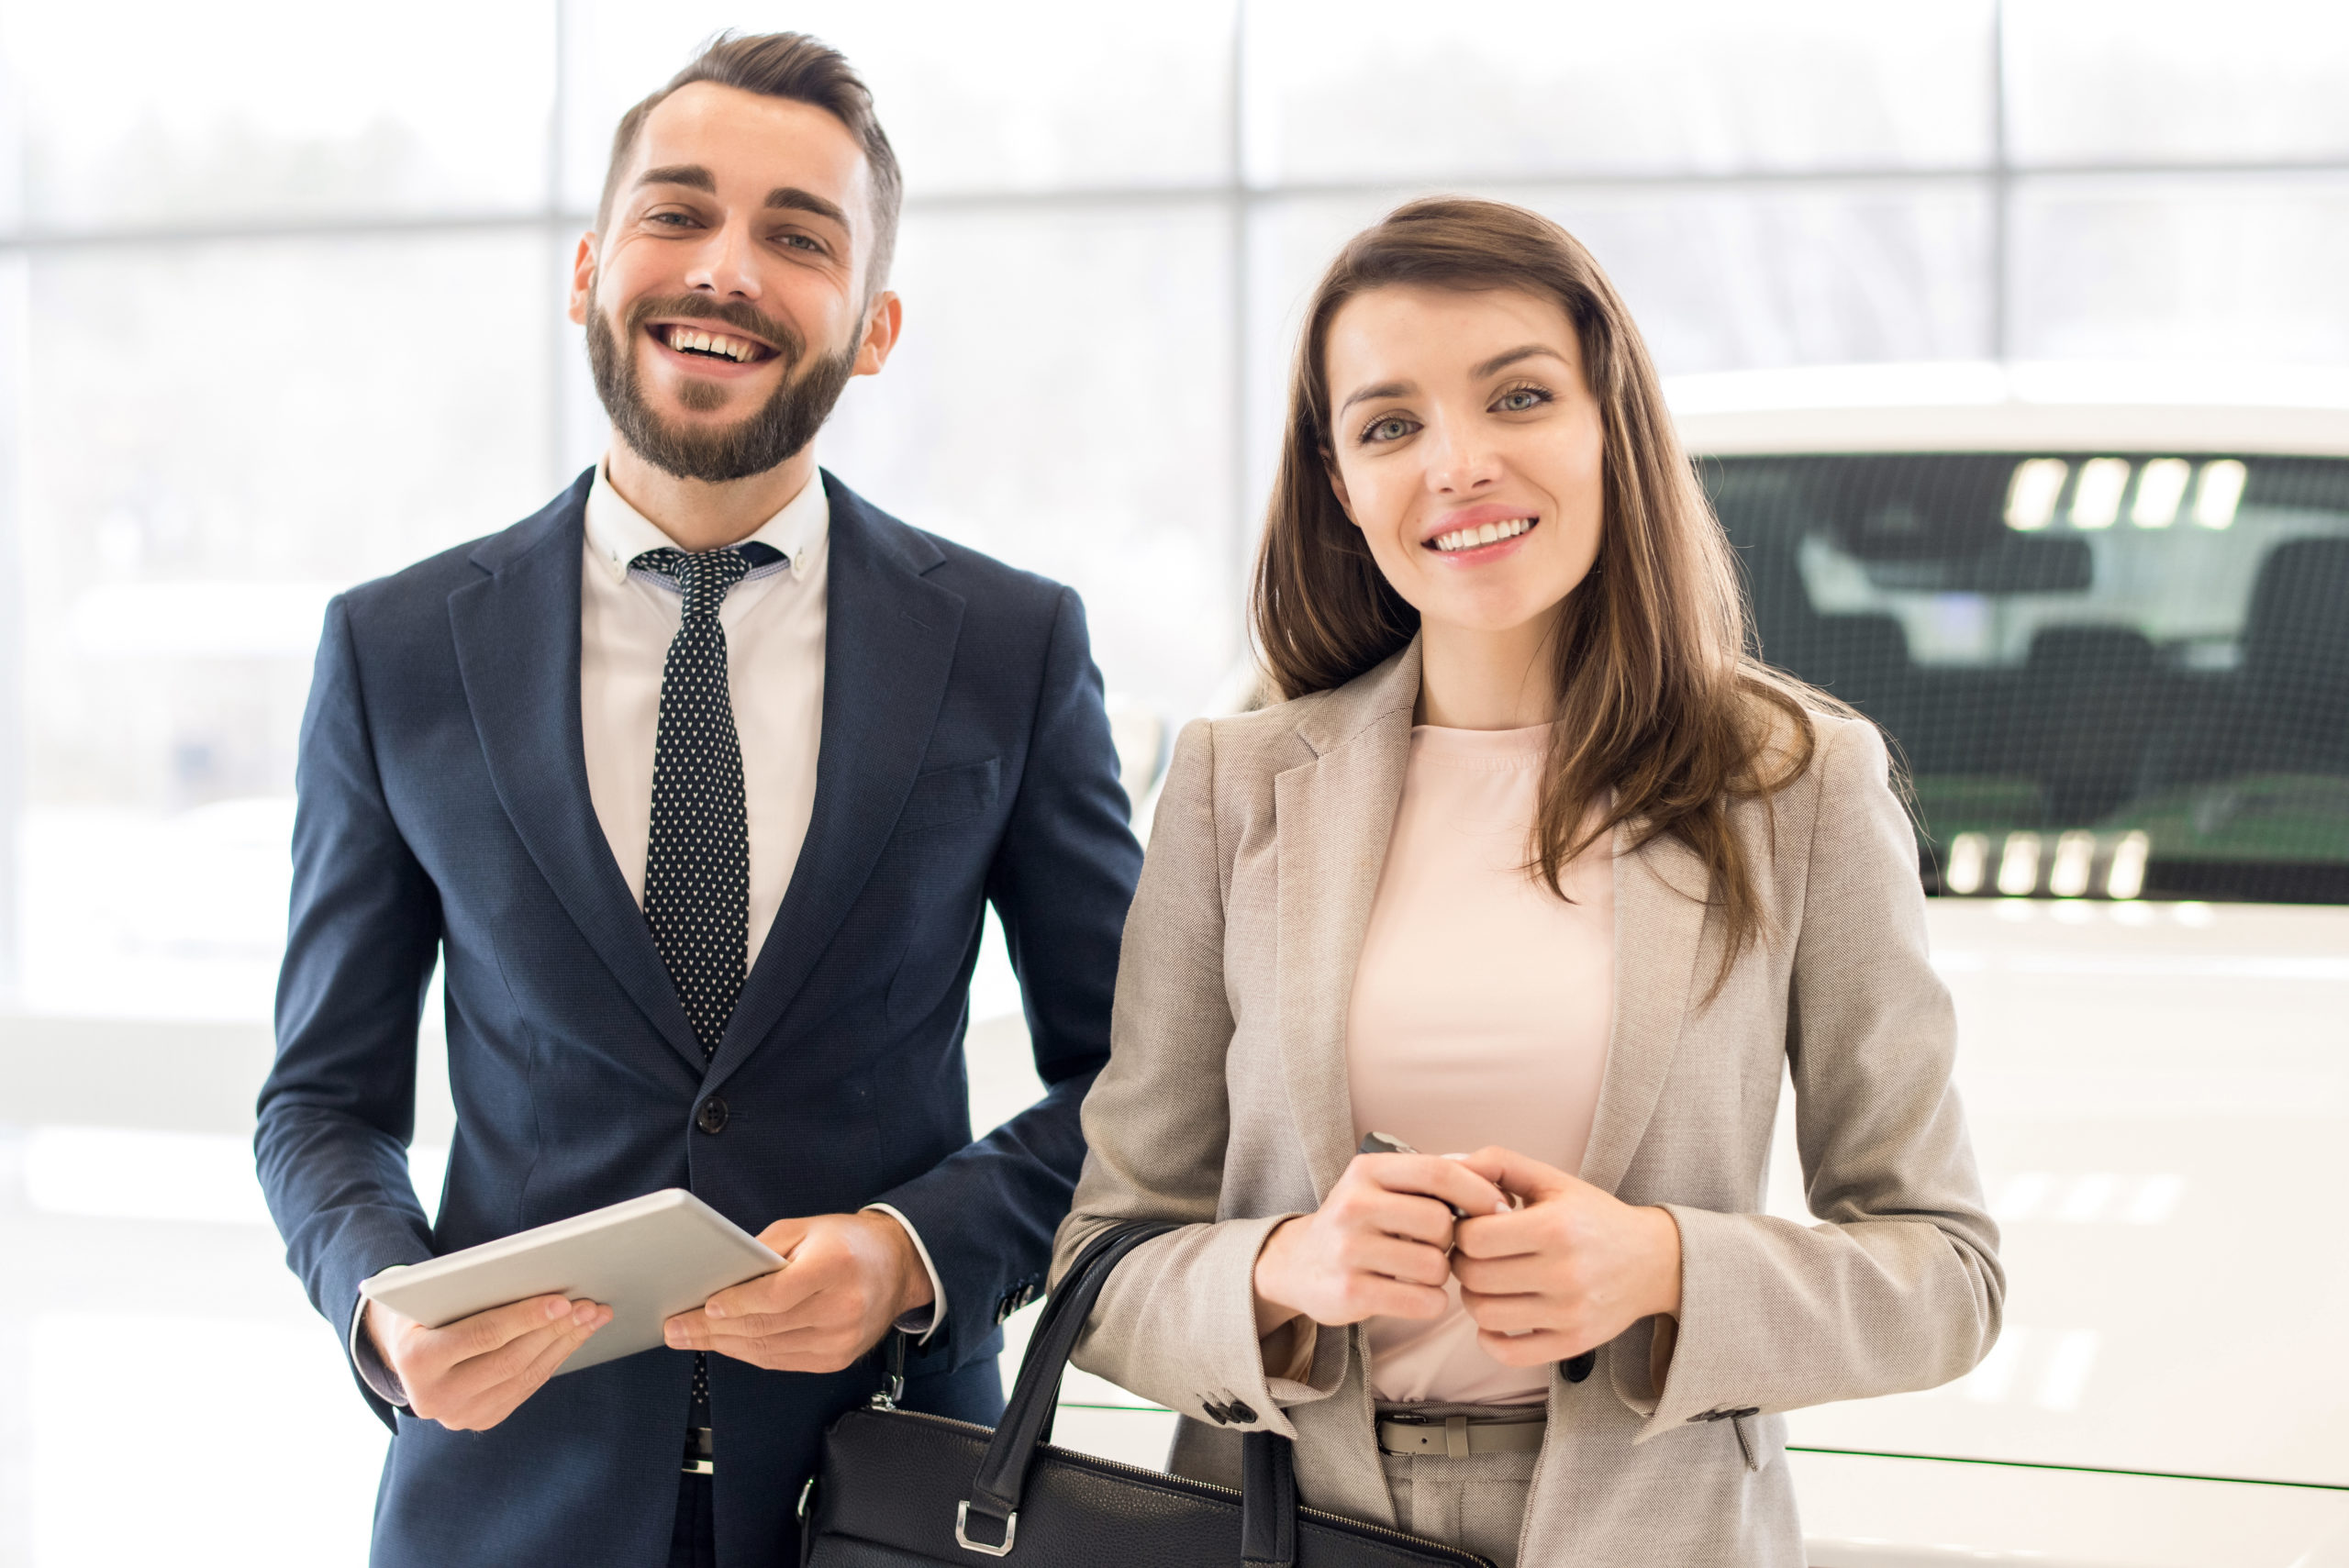 Portrait of beautiful business couple smiling cheerfully at camera coming to work in modern office building